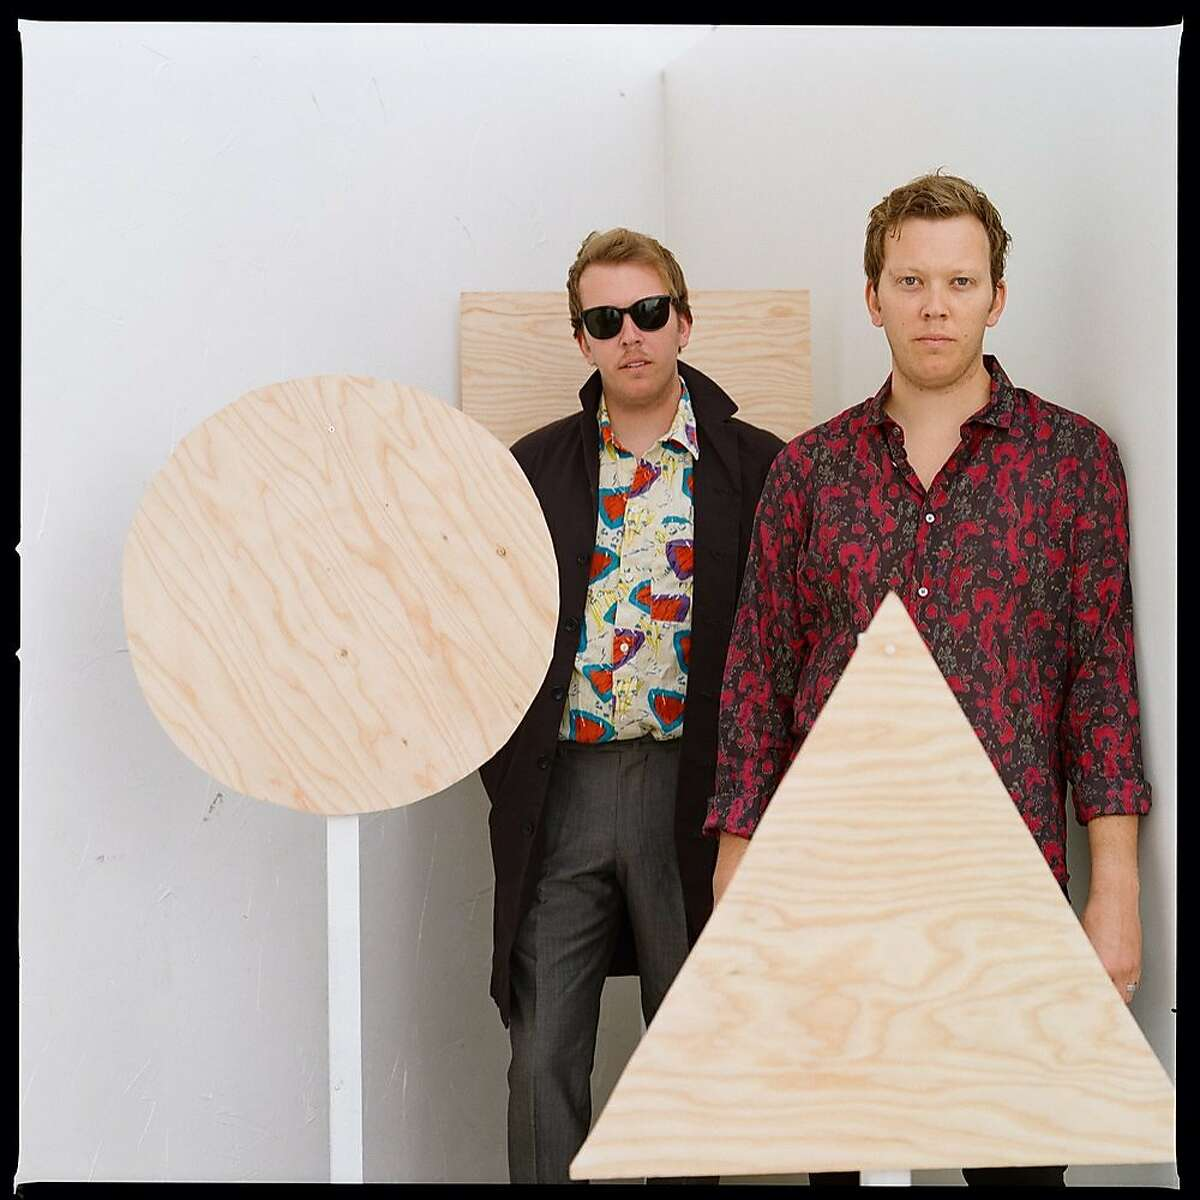 The Mattson 2, the jazz duo of twin brothers Jared and Jonathan Mattson, are set to perform at the Huichica Festival on Friday, June 9. The two-day Sonoma festival ends Satuday, June 10.